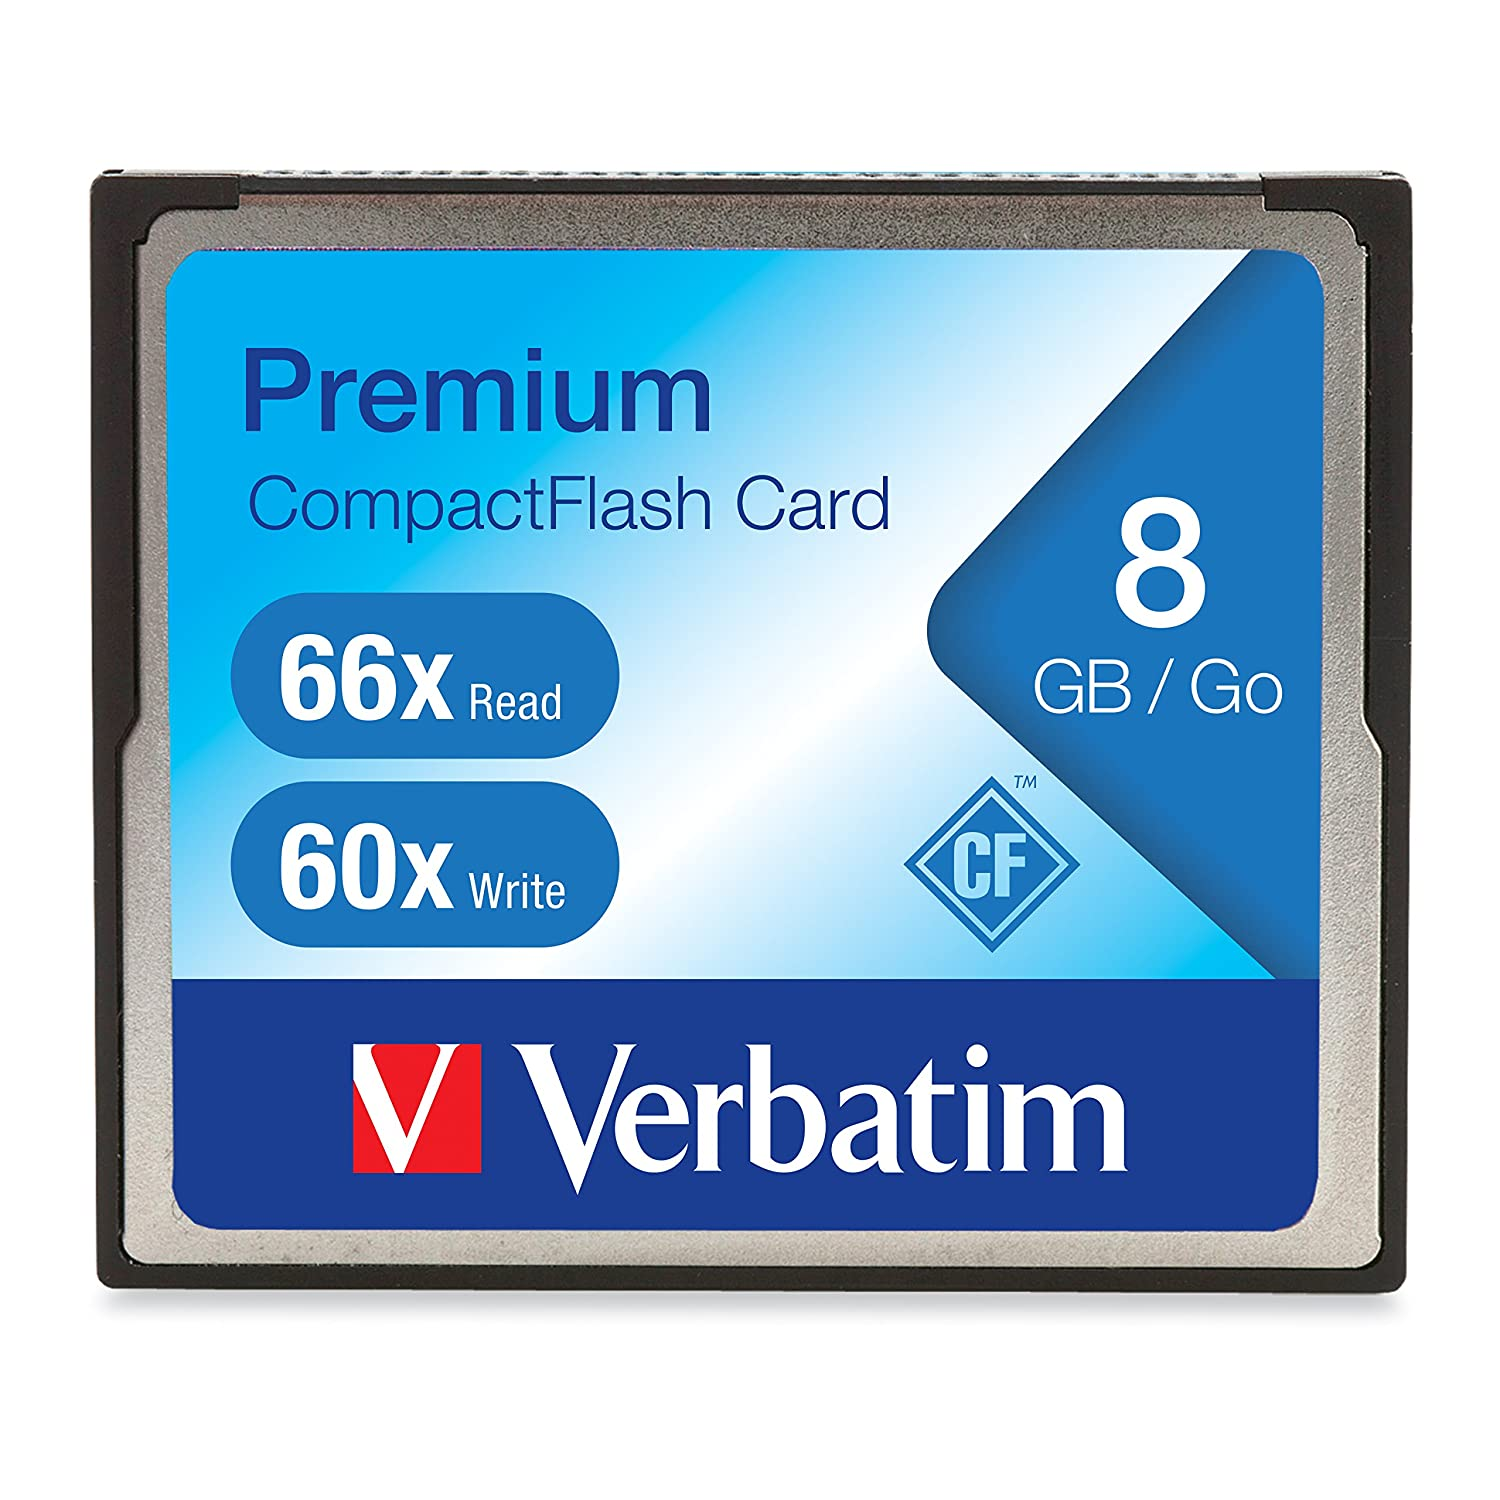 Verbatim 8GB 66X Premium CompactFlash Memory Card VERBATIM CORPORATION 96196 Flash Memory Devices